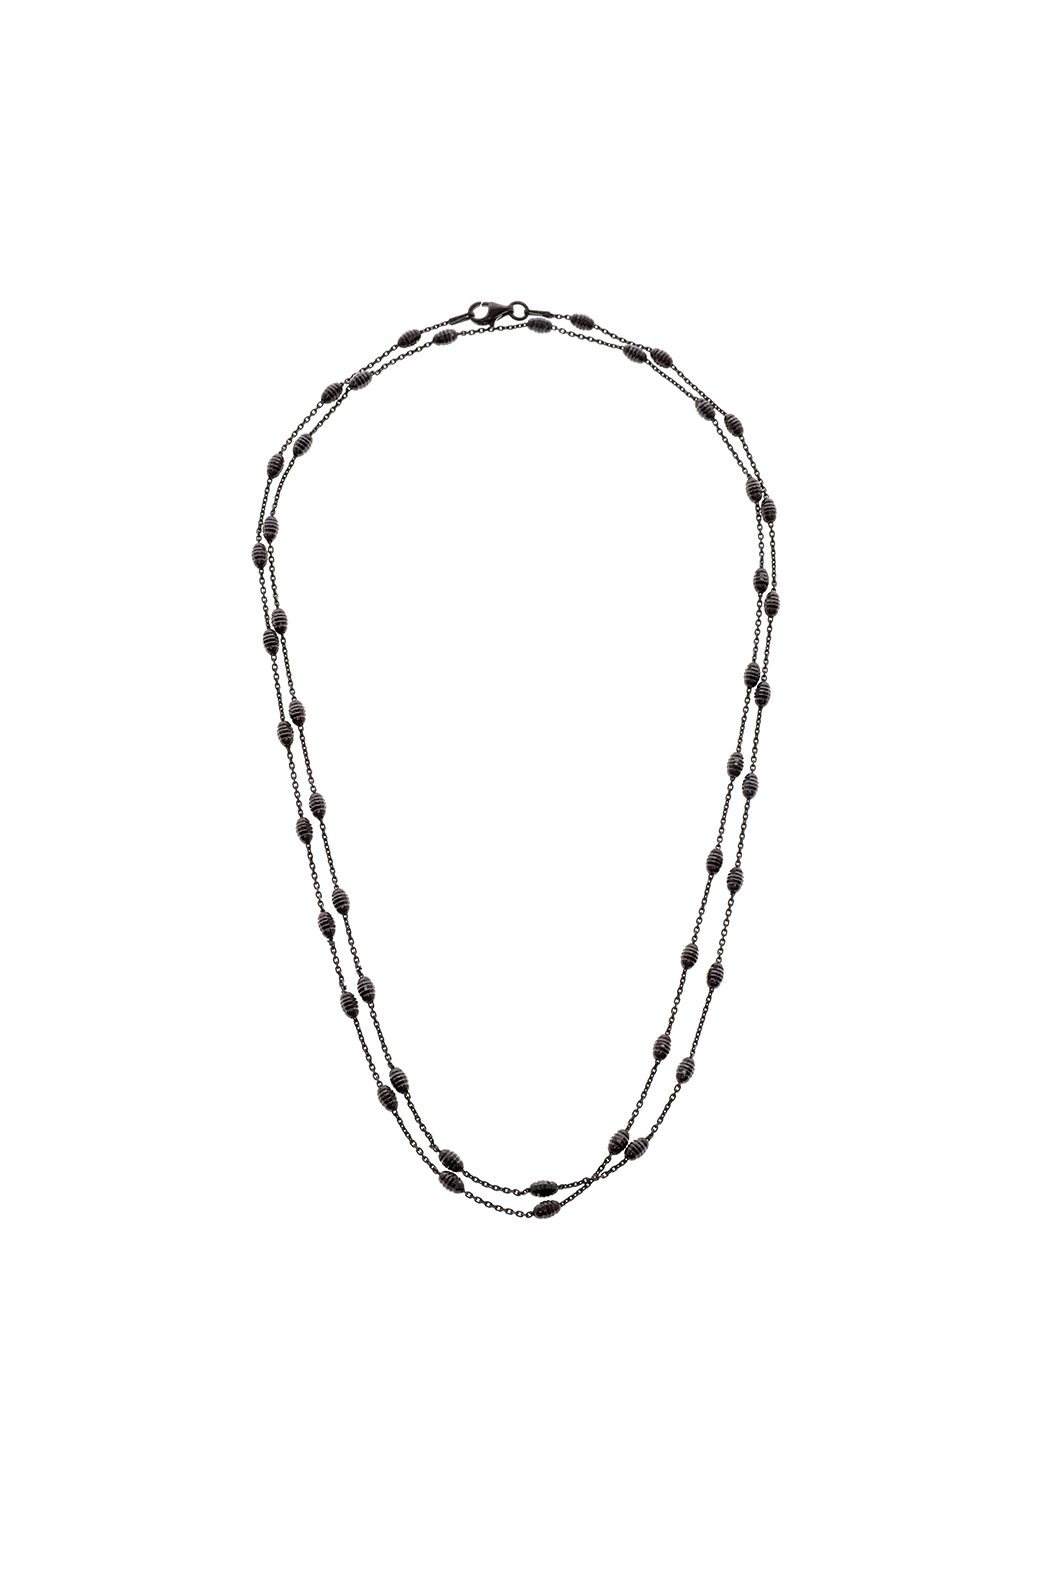 Silverlina Black Oxidize Chain Necklace - Main Image